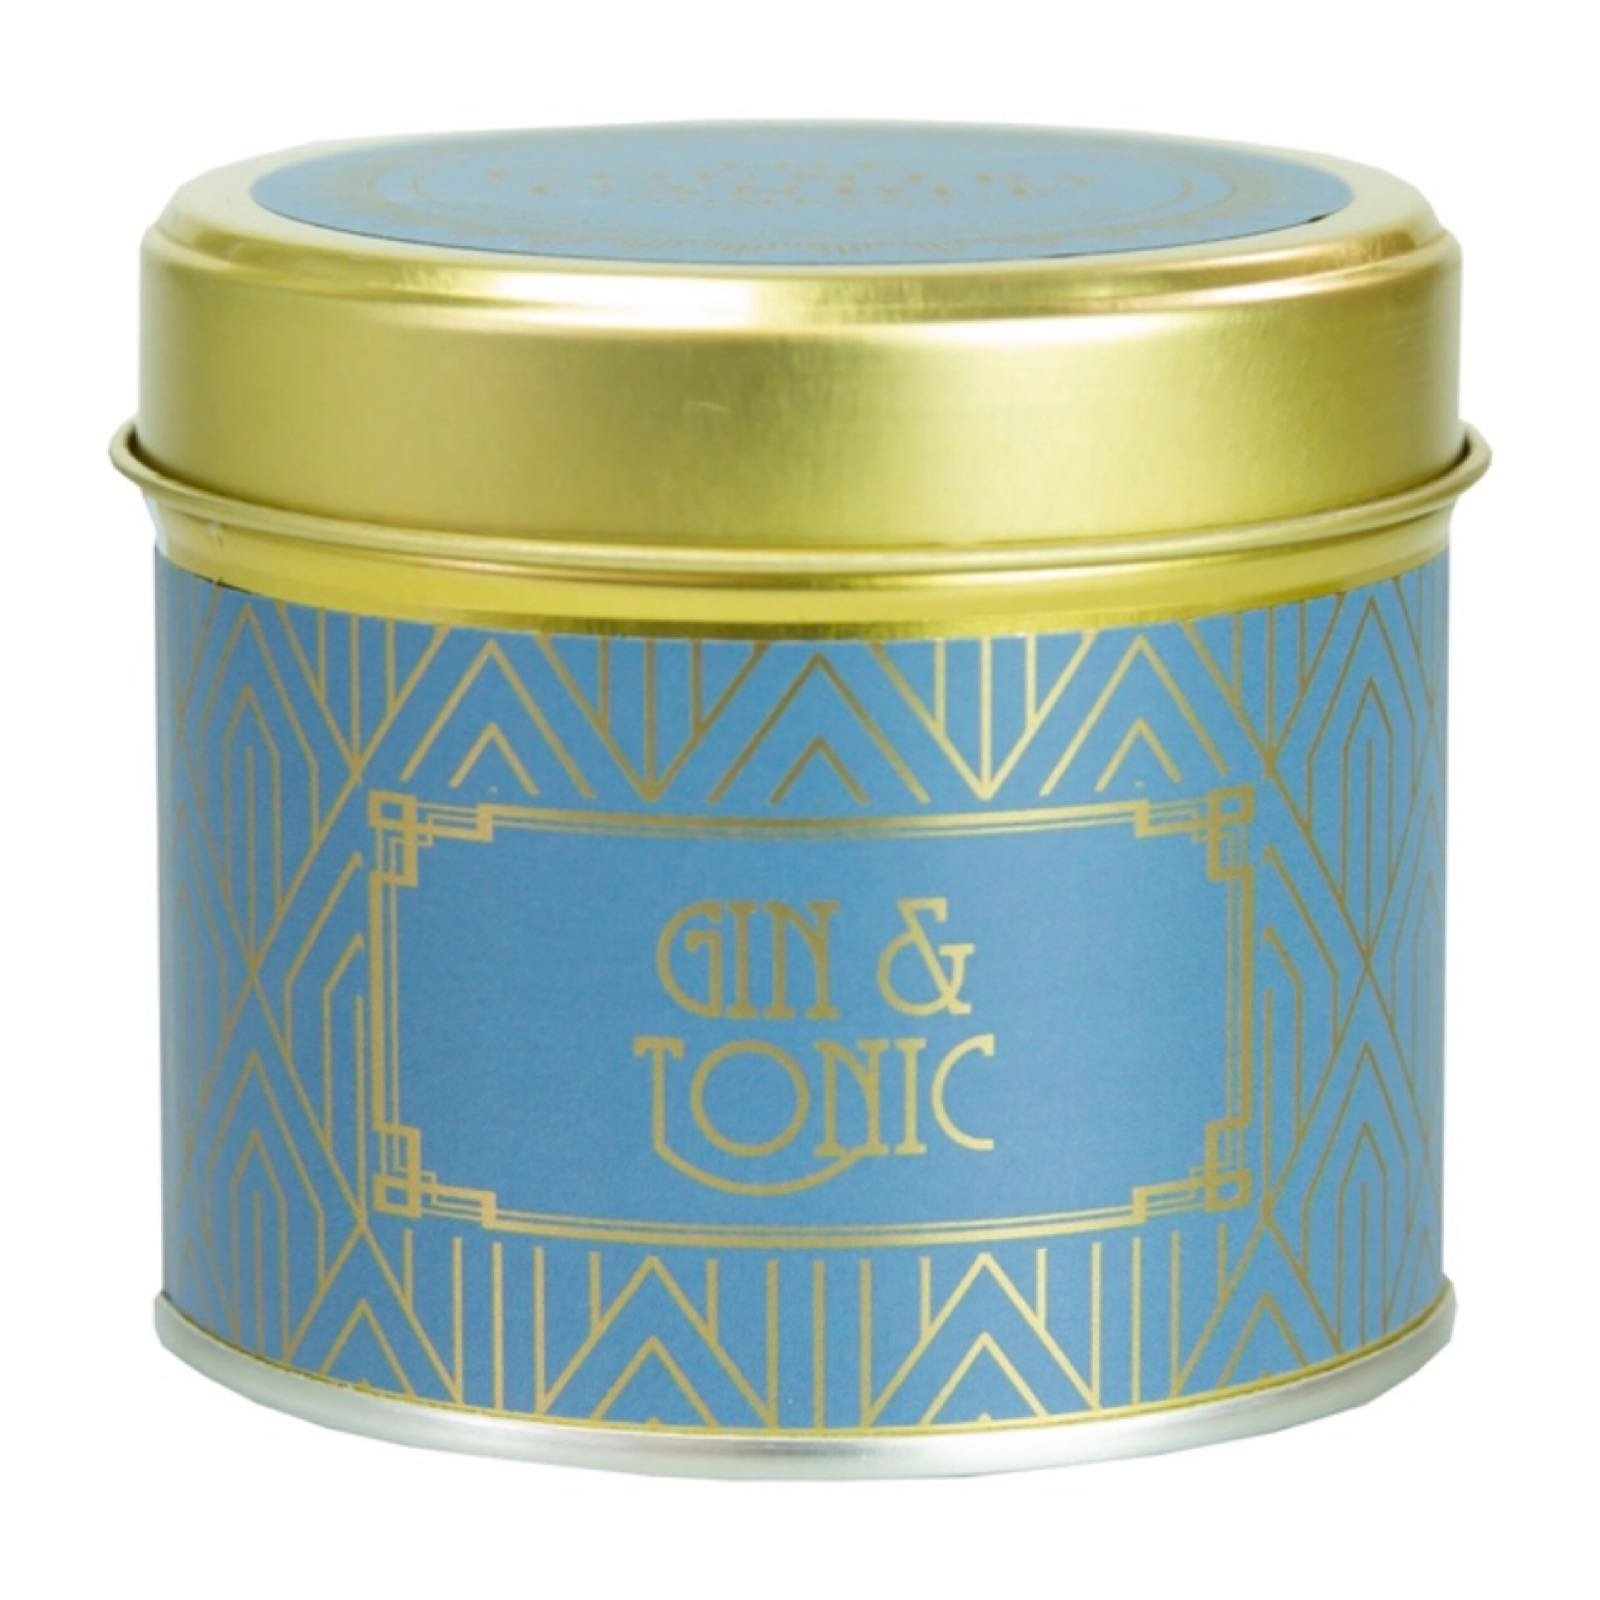 'Gin & Tonic' Happy Hour Candle in a Tin